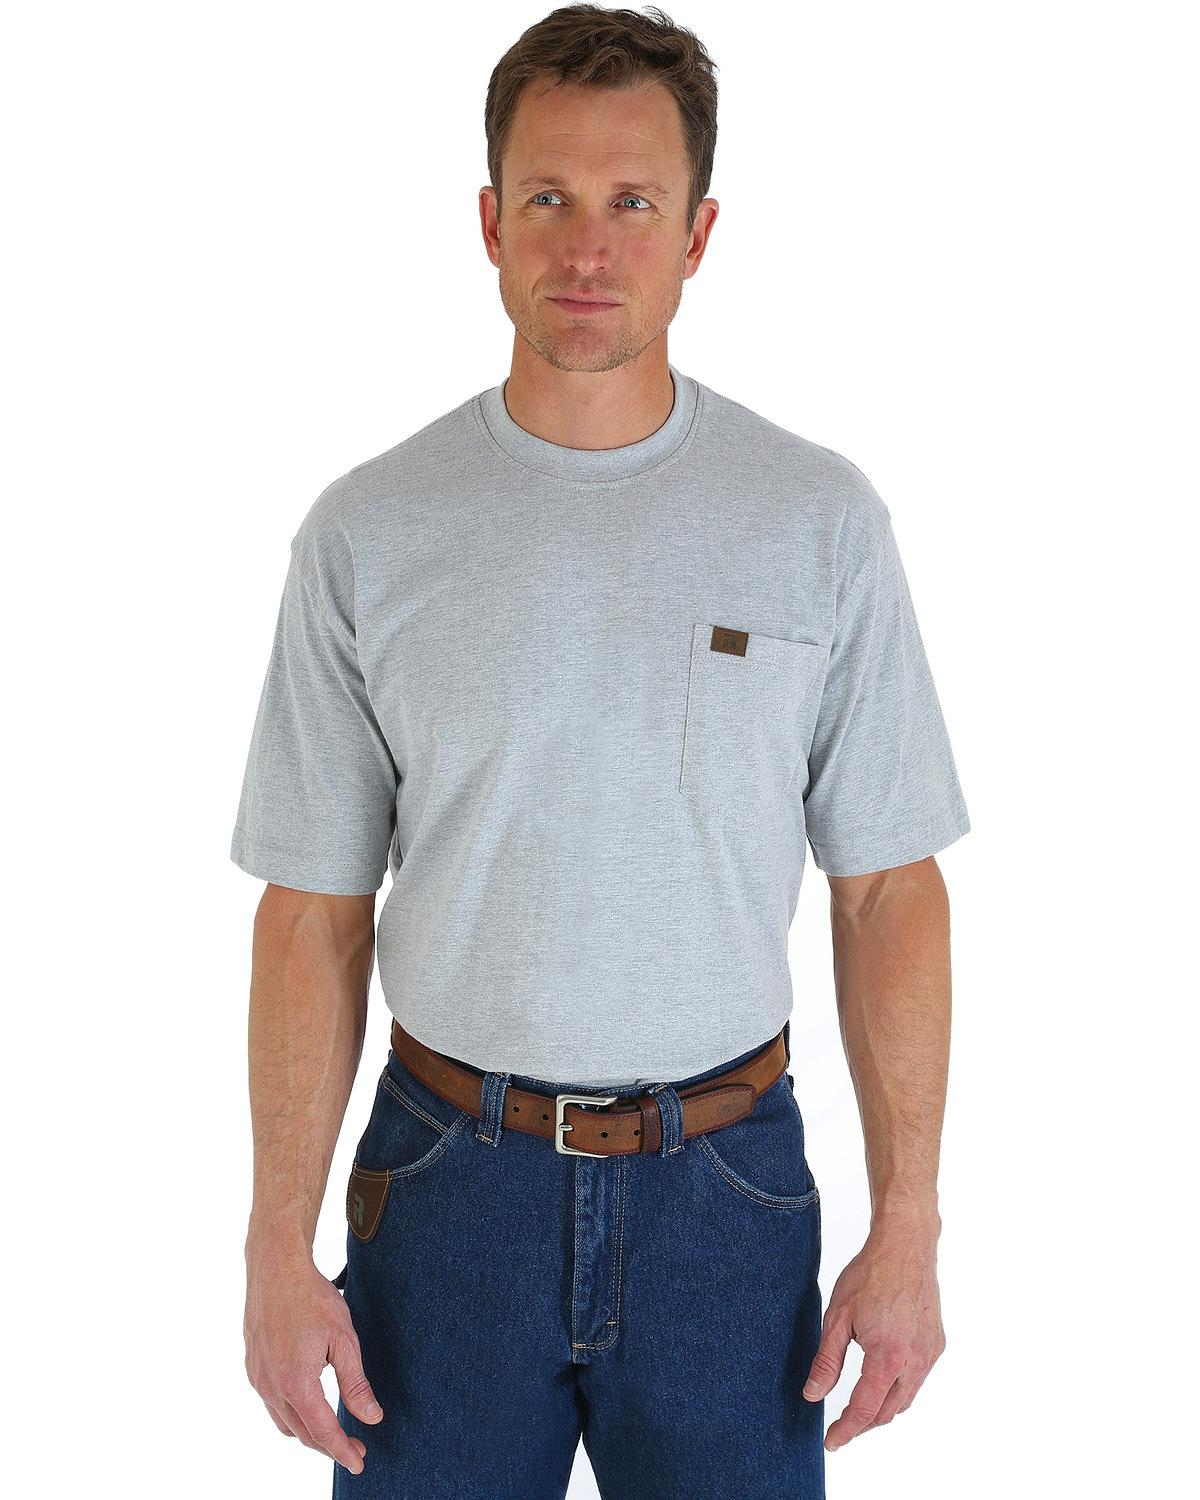 Wrangler men 39 s riggs short sleeve pocket t shirt big and for Big and tall polo shirts with pockets